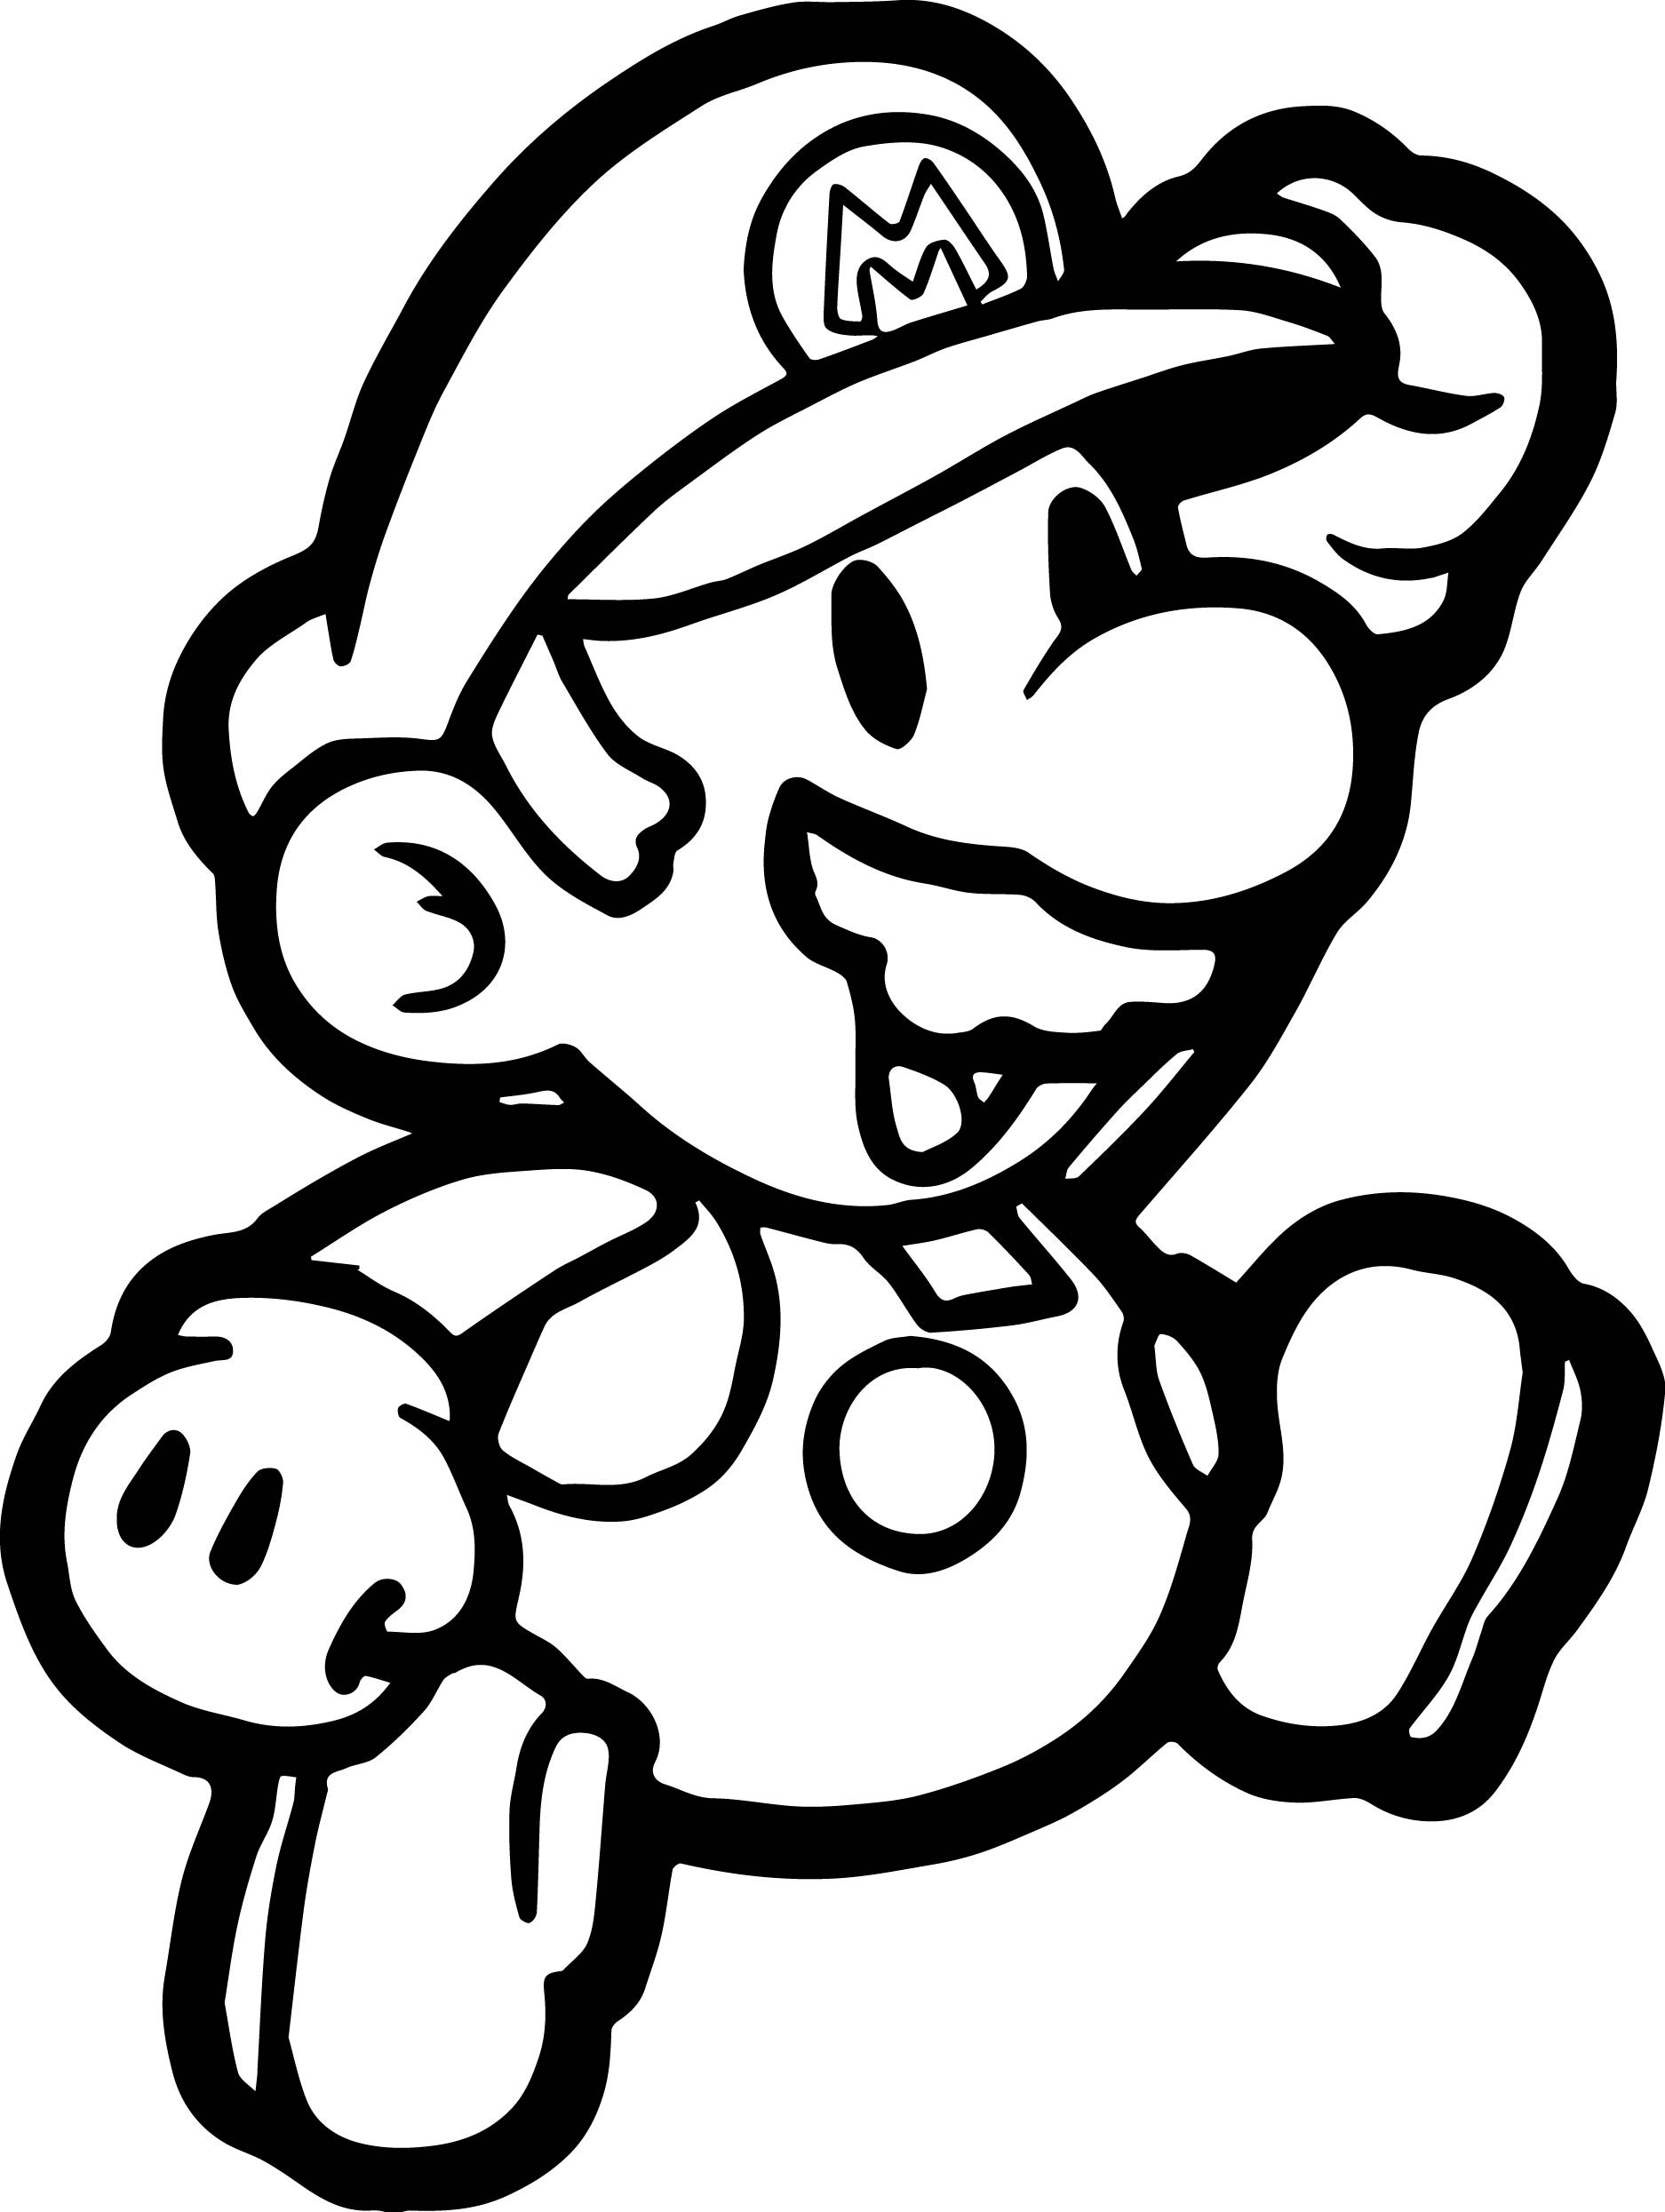 Keroppi Coloring Pages Free to Print Copy Paper Mario Kids 3 Collection Of Super Mario Coloring Pages Bonnieleepanda Gallery